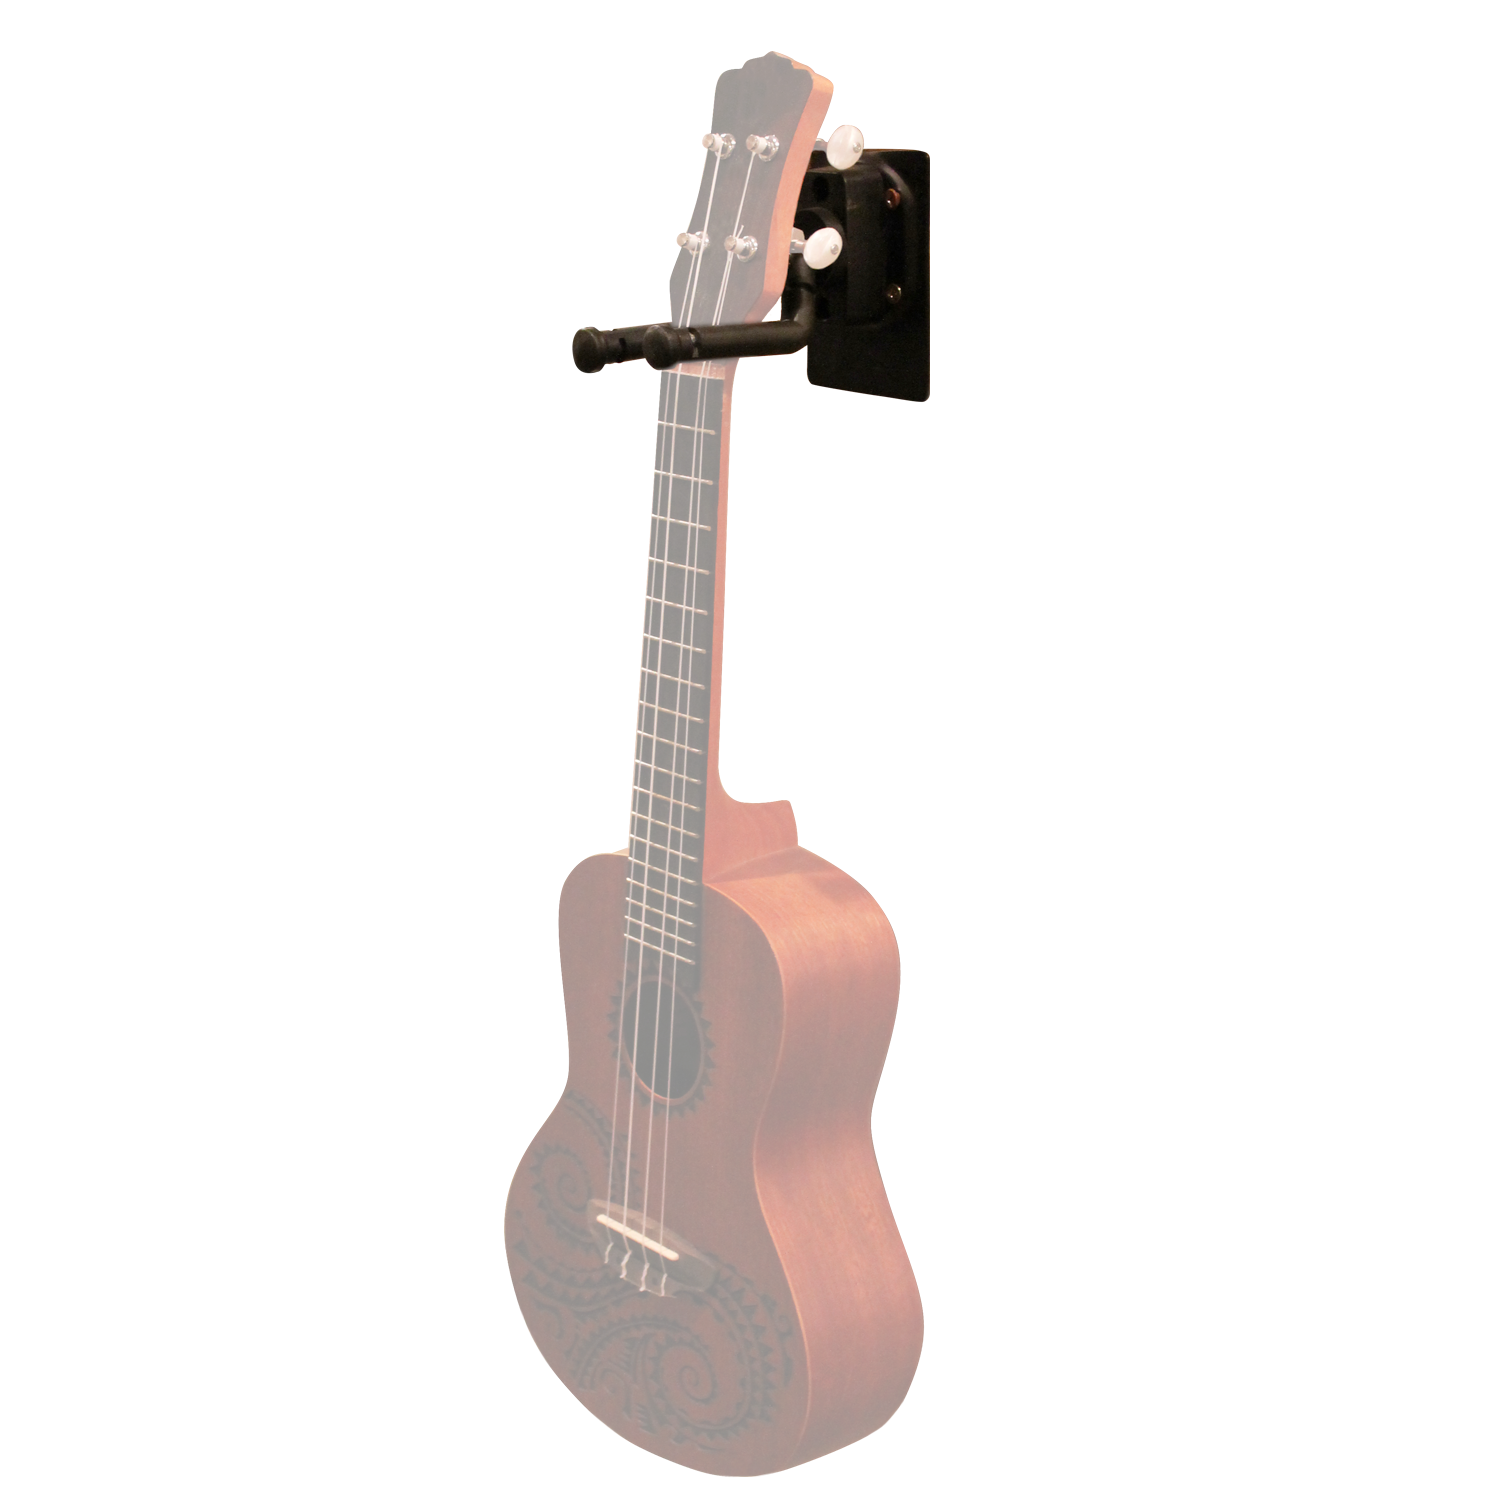 Wall hanger with Ukulele